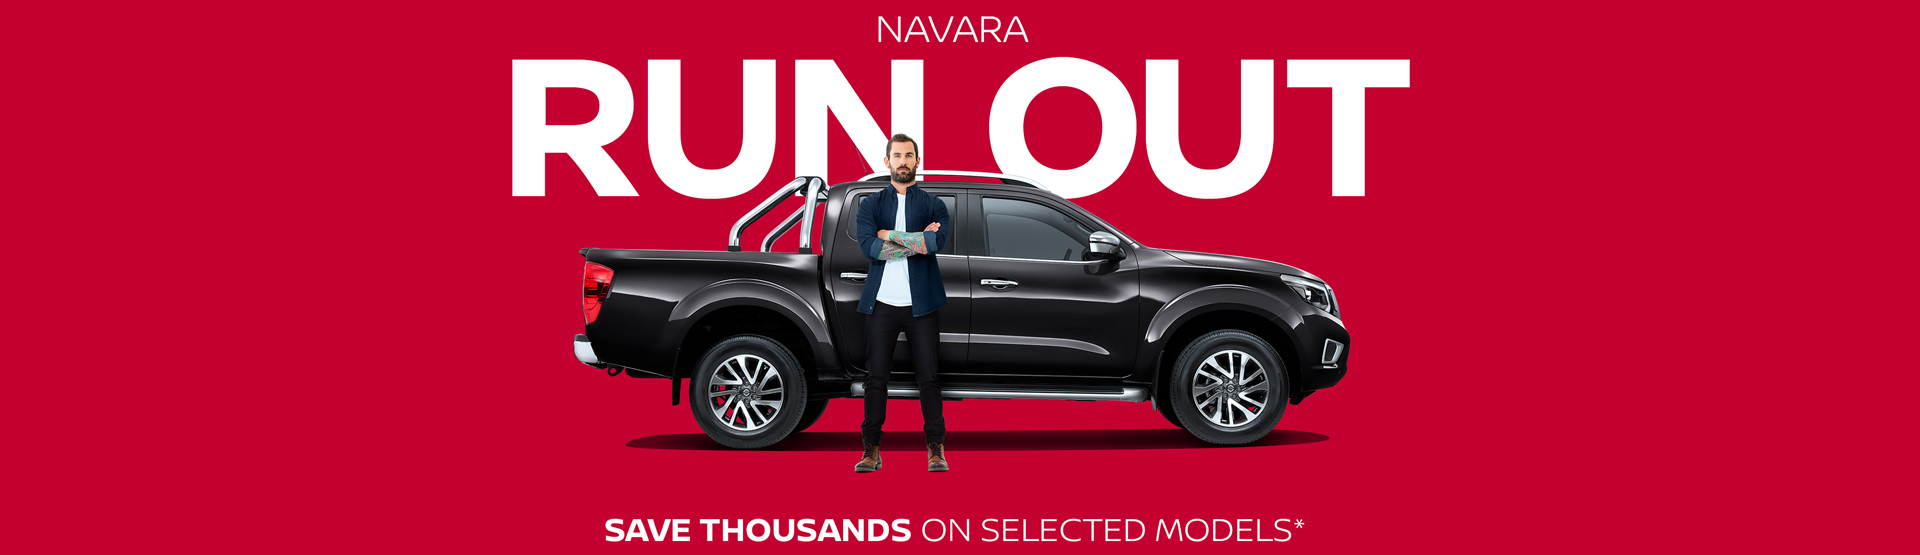 Navara Run Out